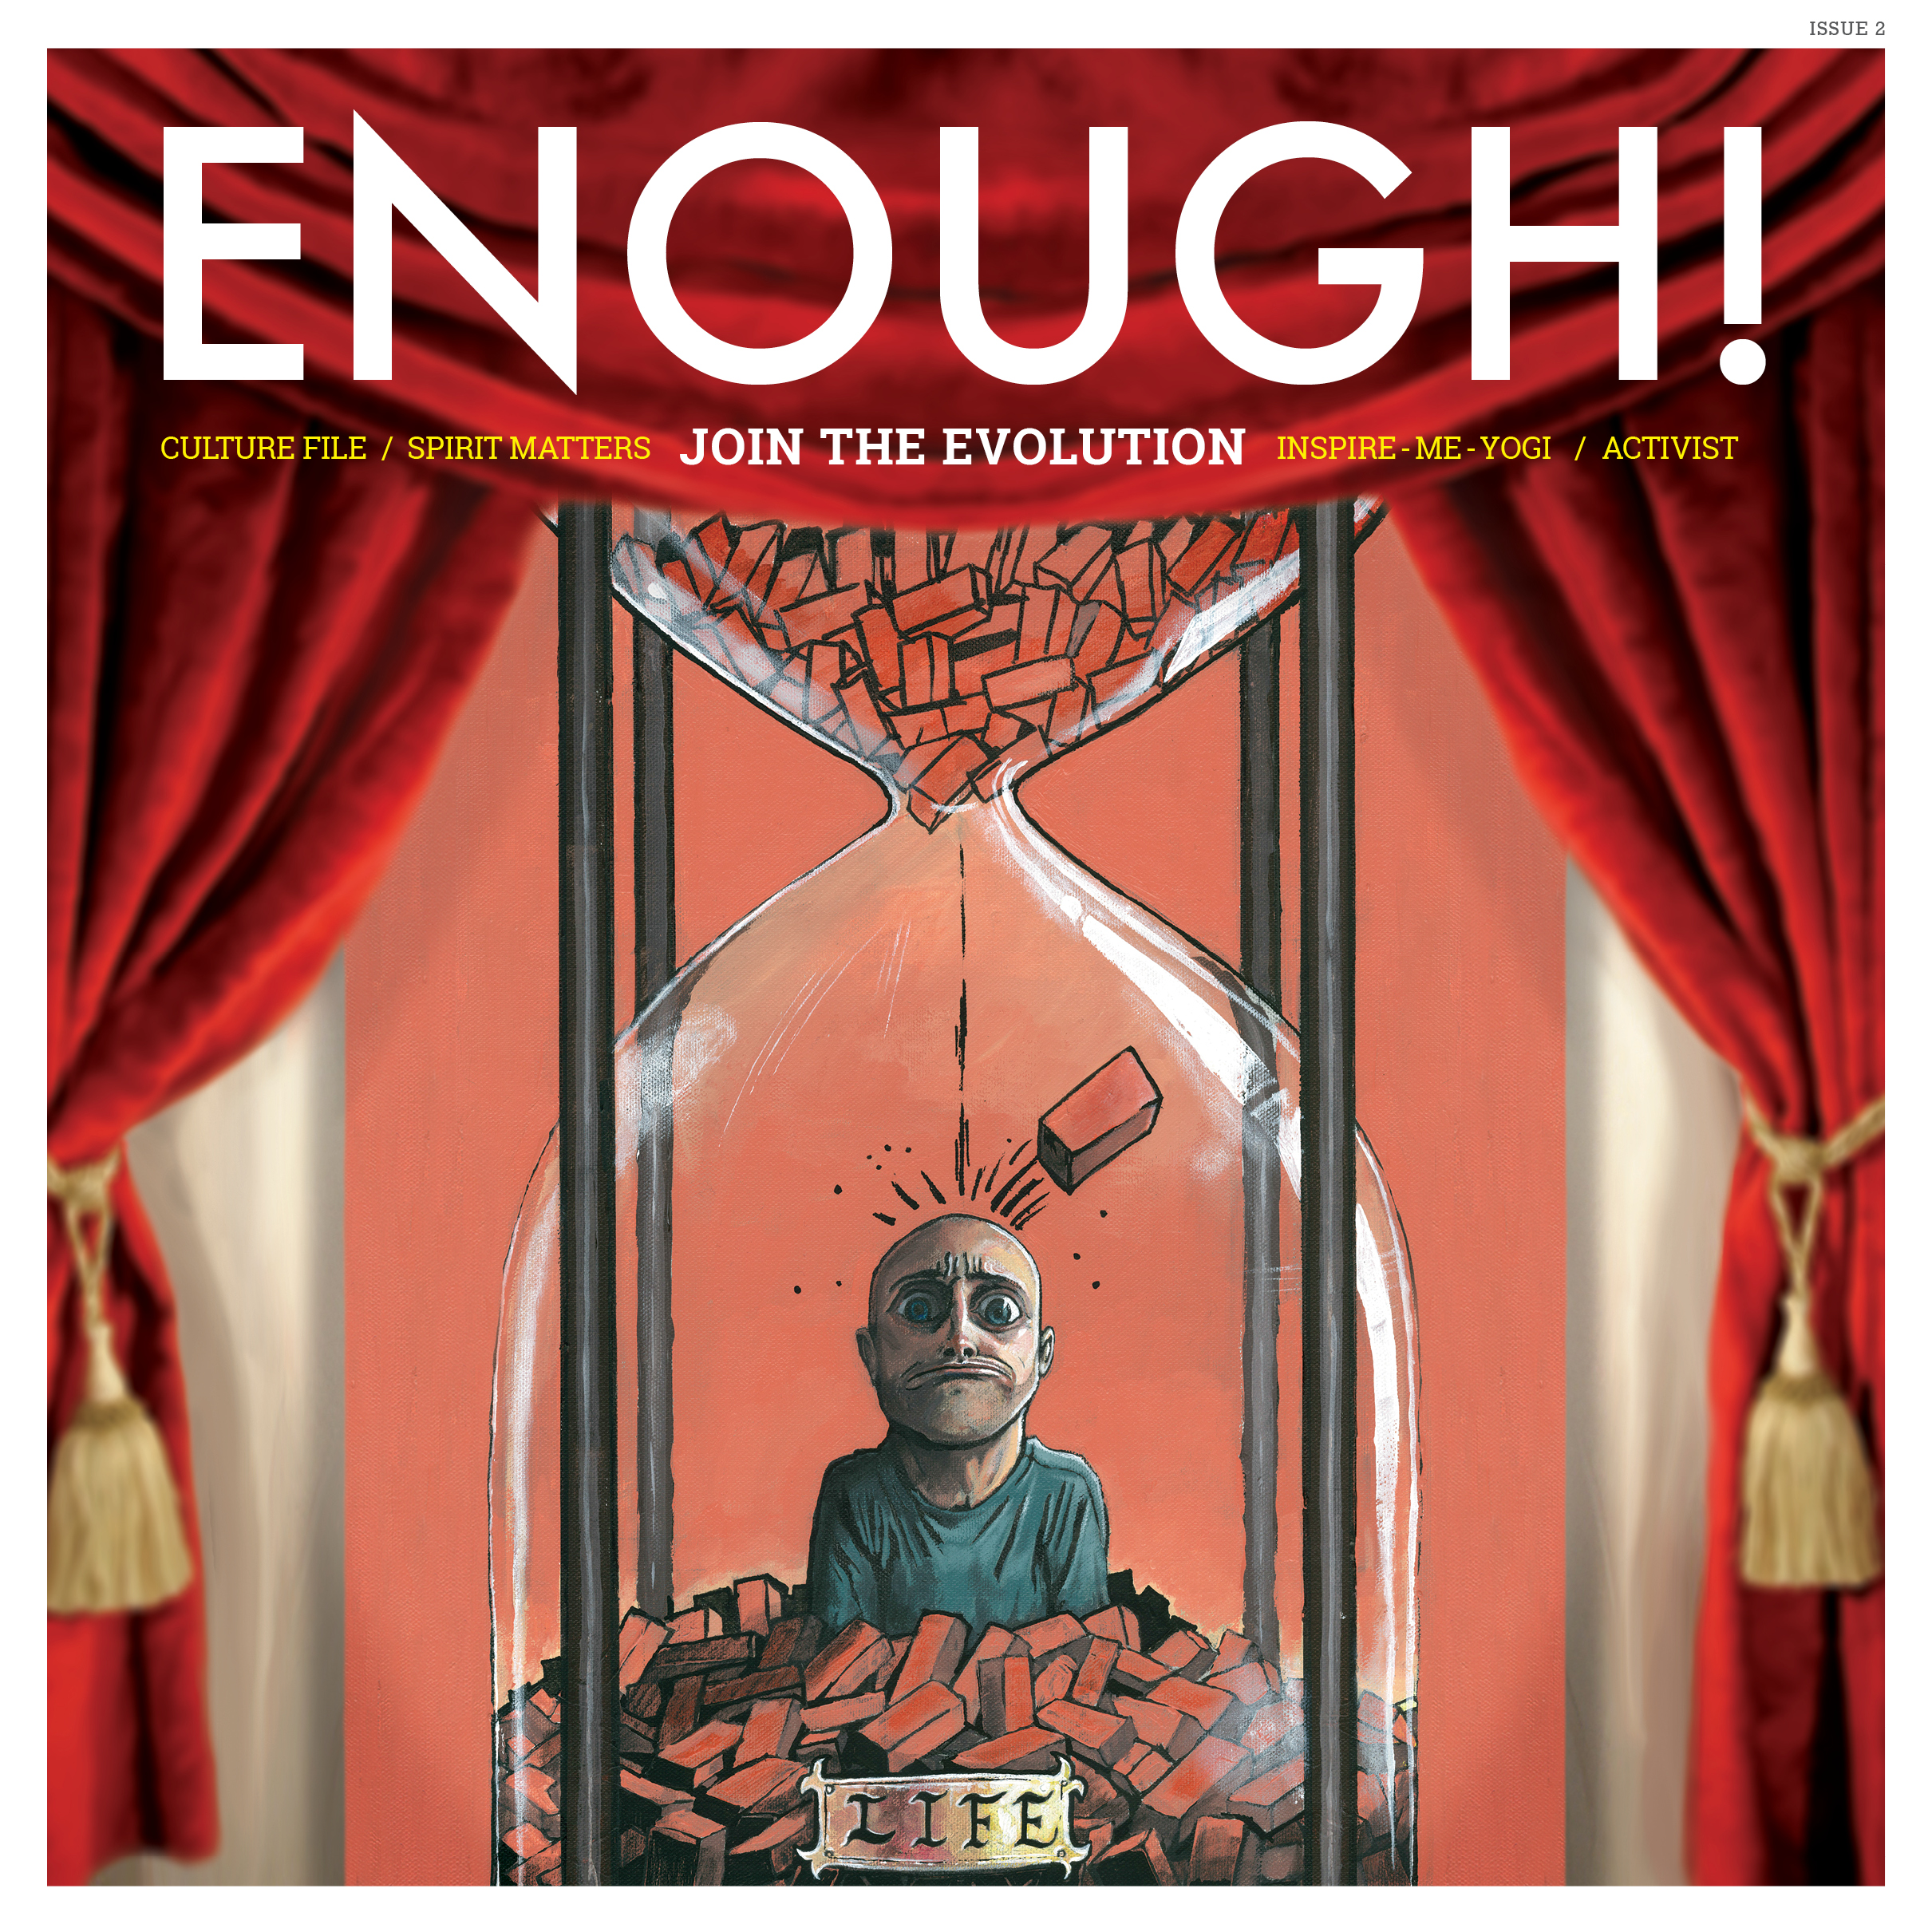 Enough Magazine Issue - 2